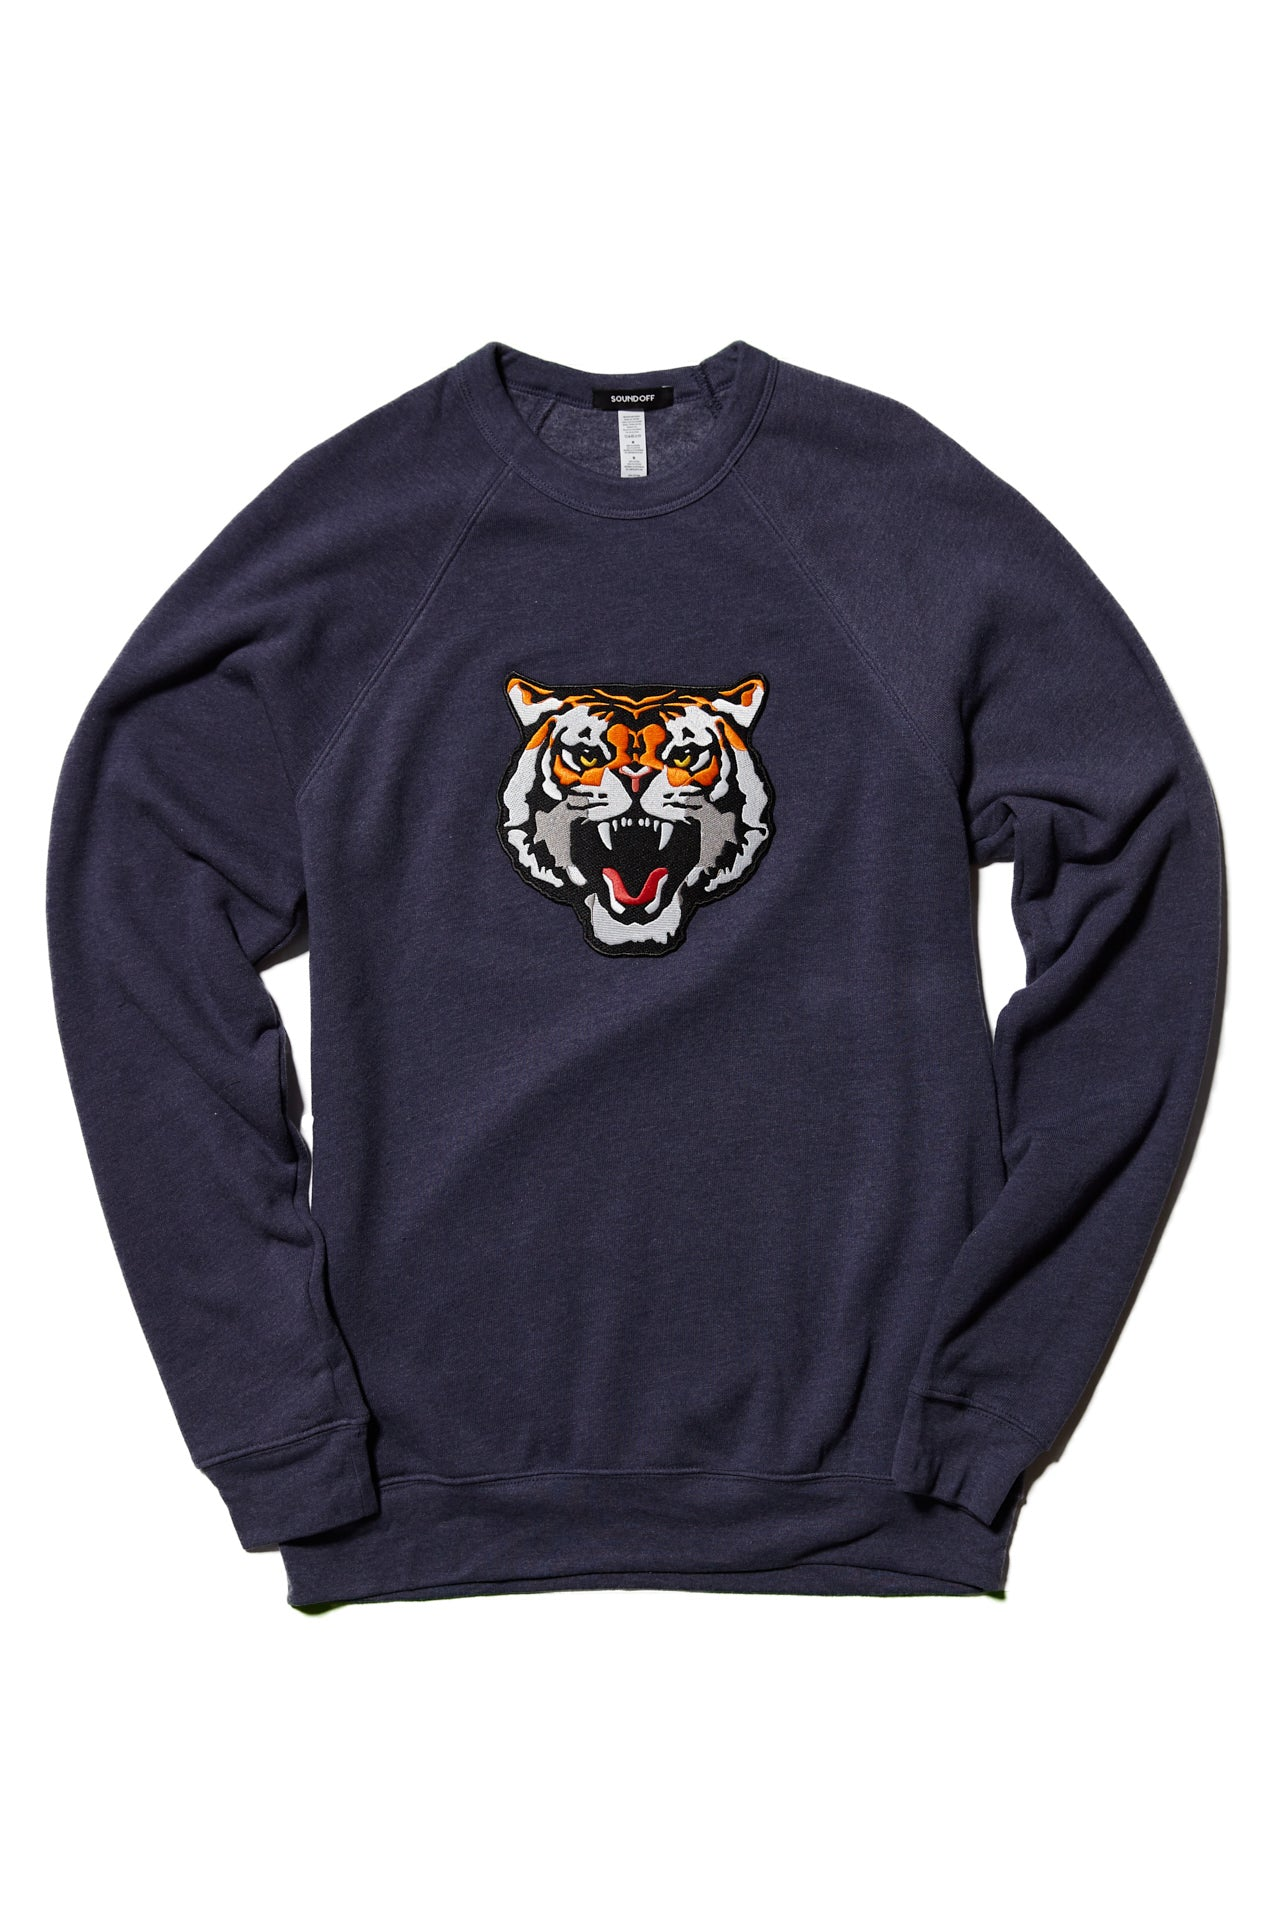 SAVAGE BEAST SWEATSHIRT; HEATHER NAVY